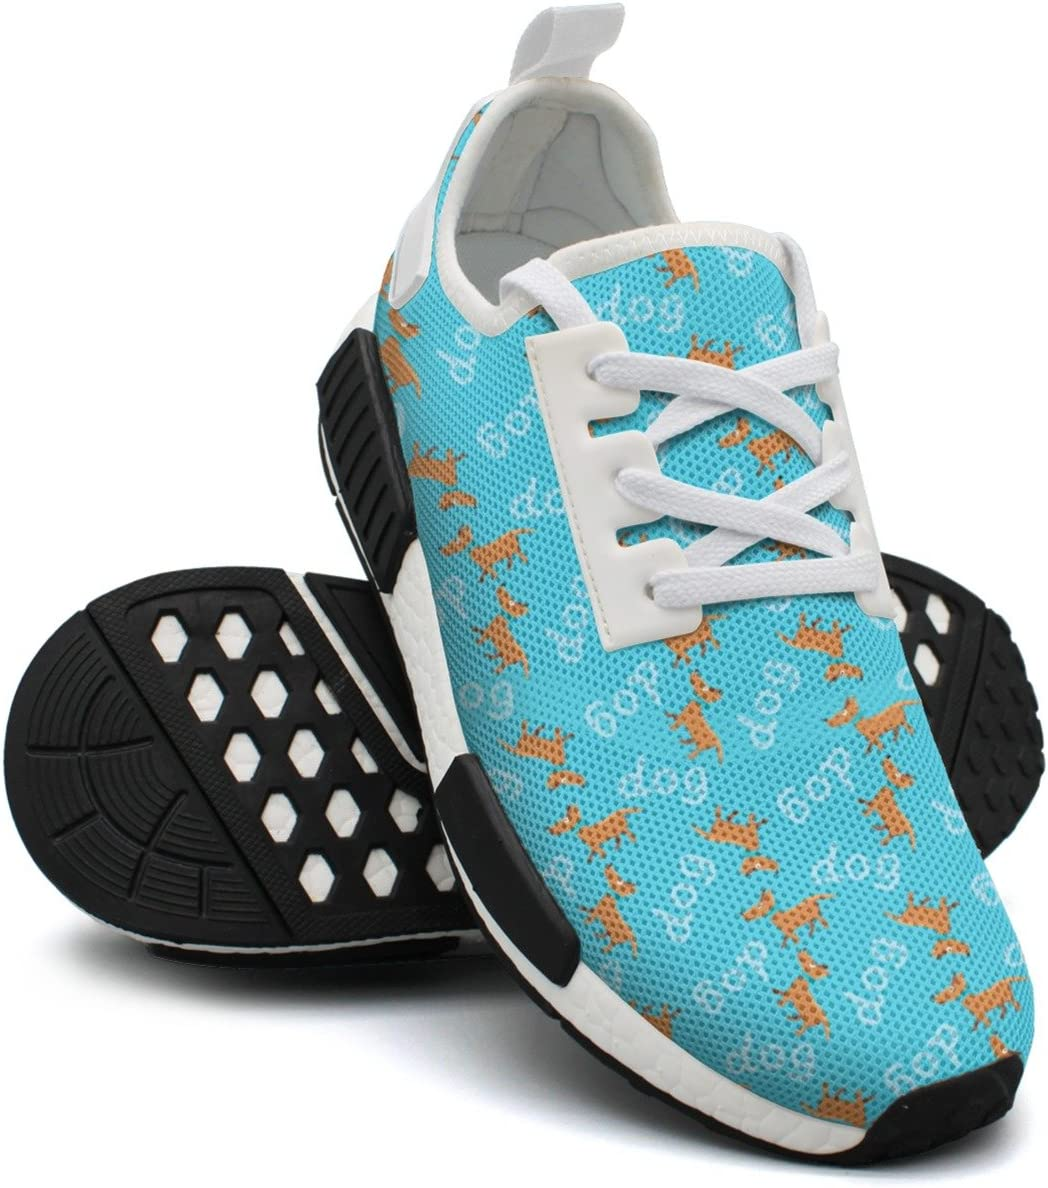 Cute Dog Womens Comfortable Lightweight Tennis Sneakers Gym Outdoor Sports Shoes